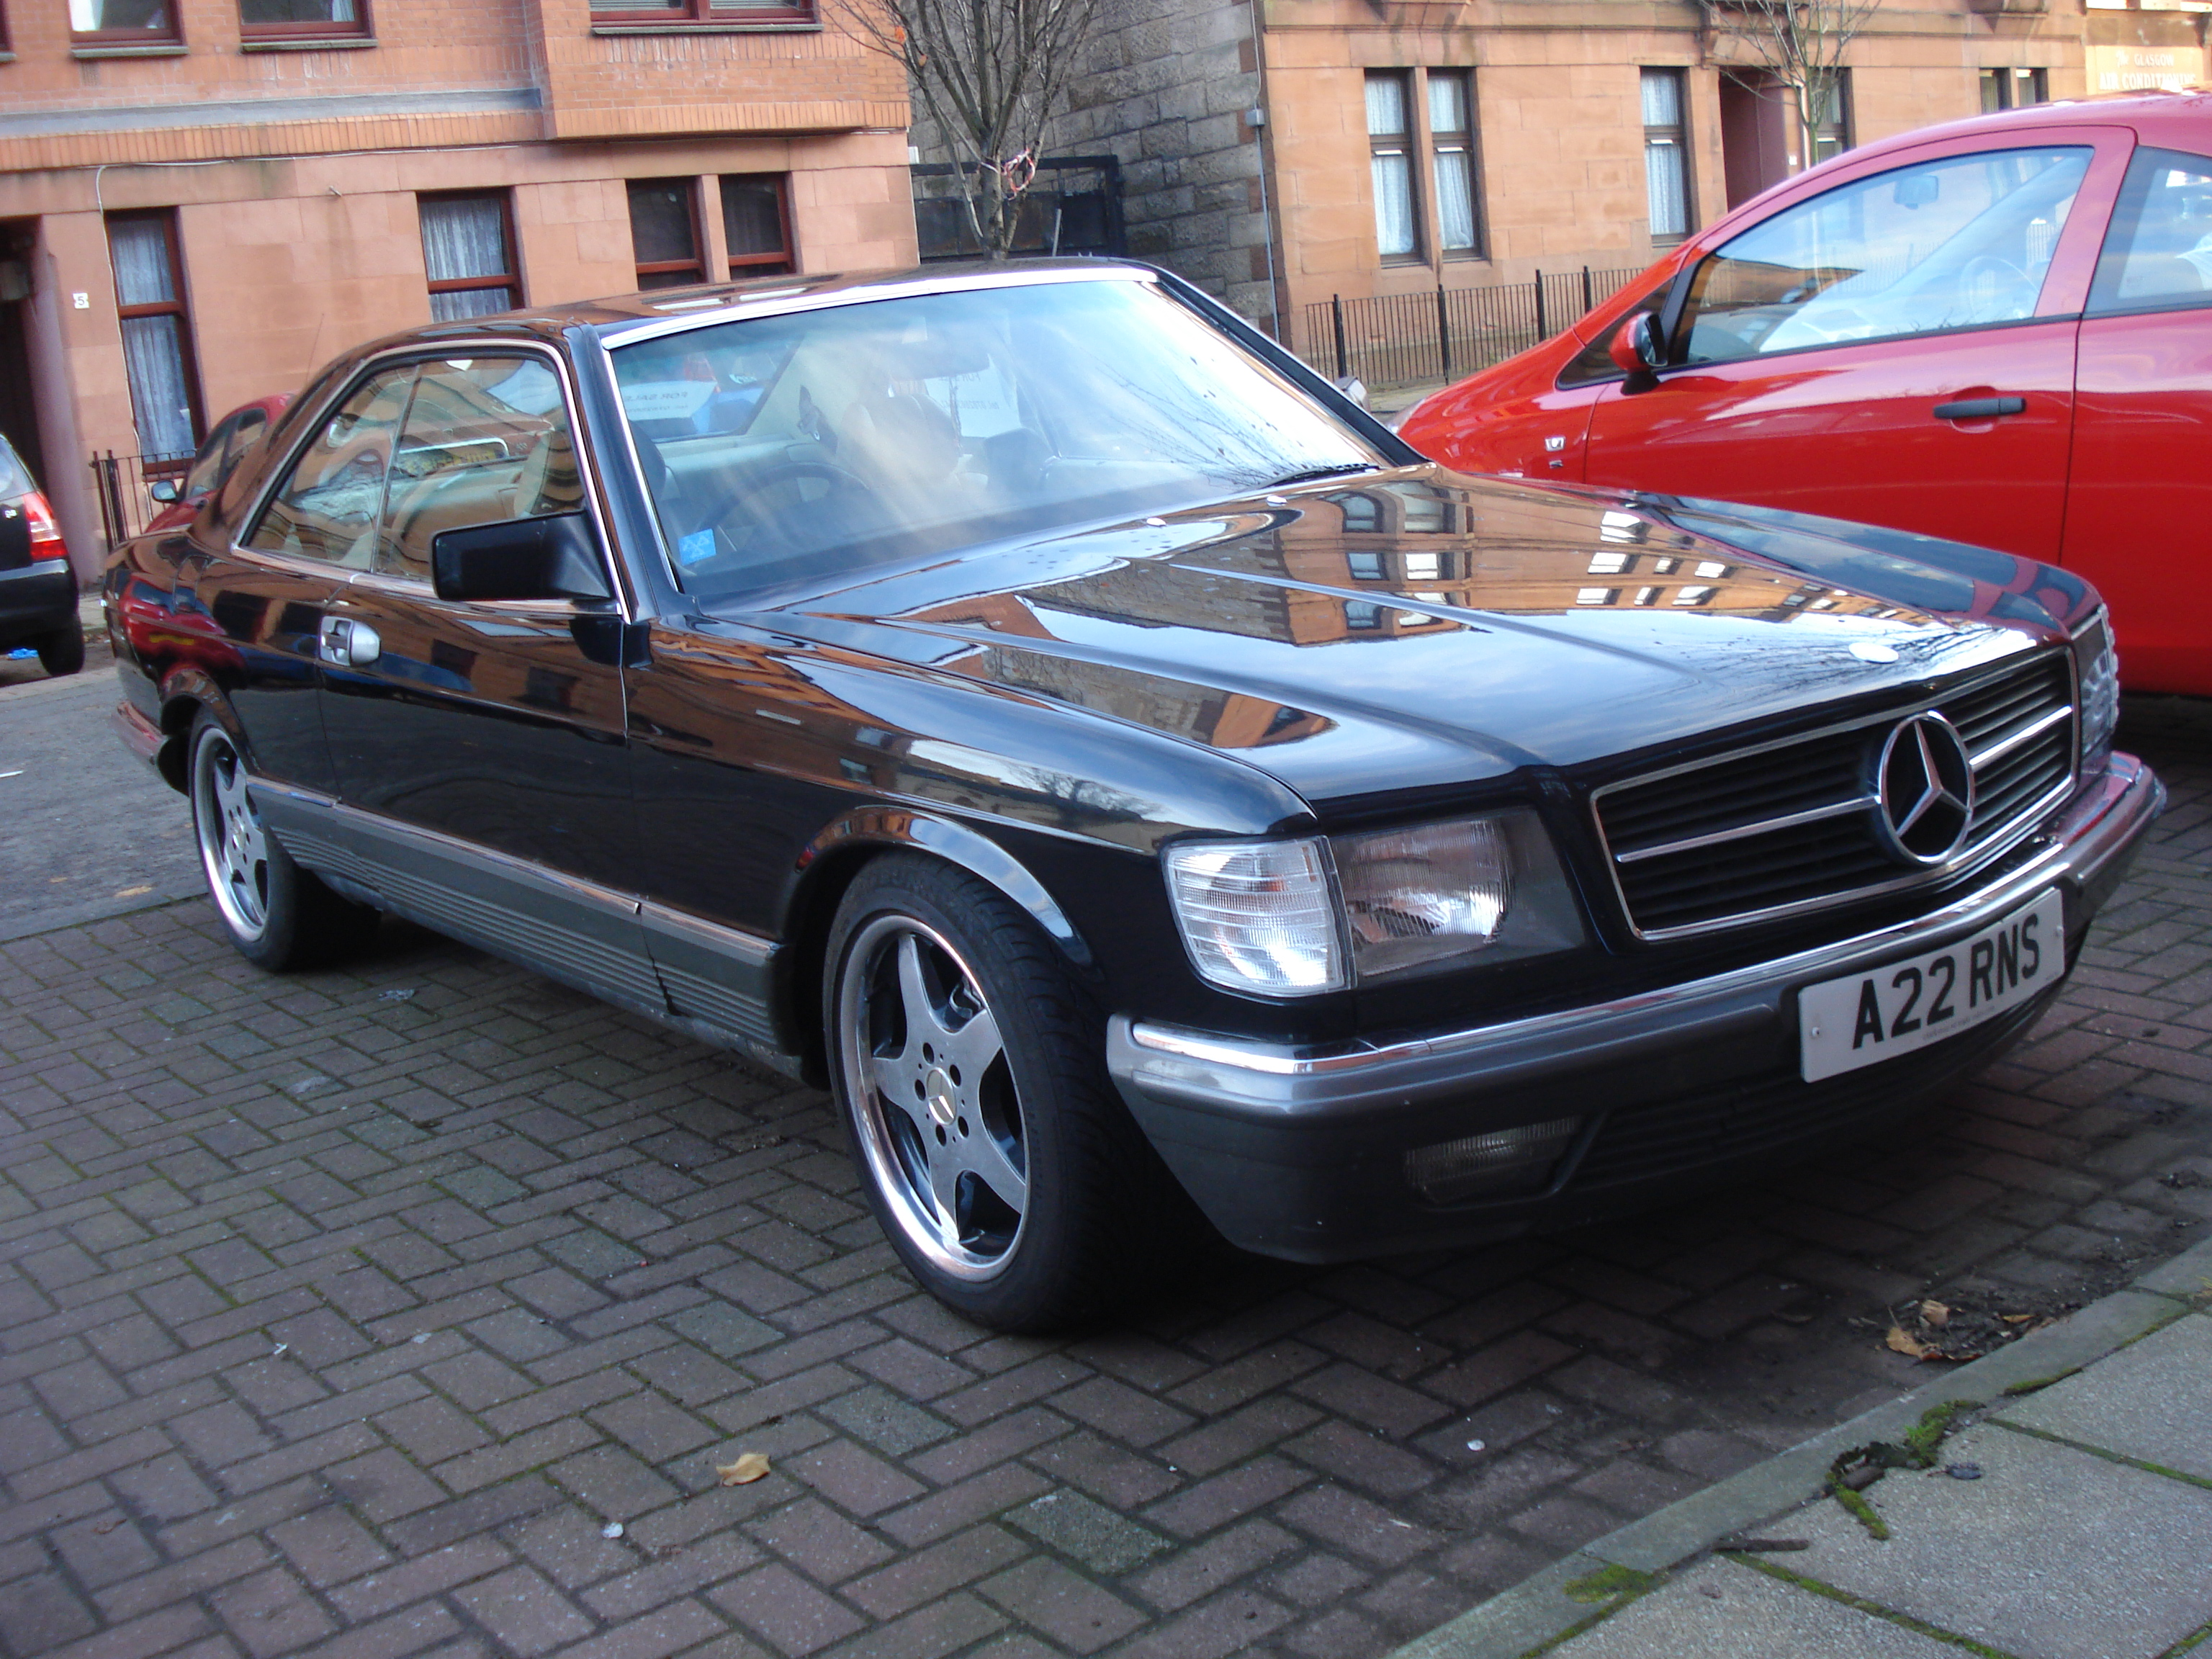 1983 Mercedes Benz 500 SEC | Flickr - Photo Sharing!